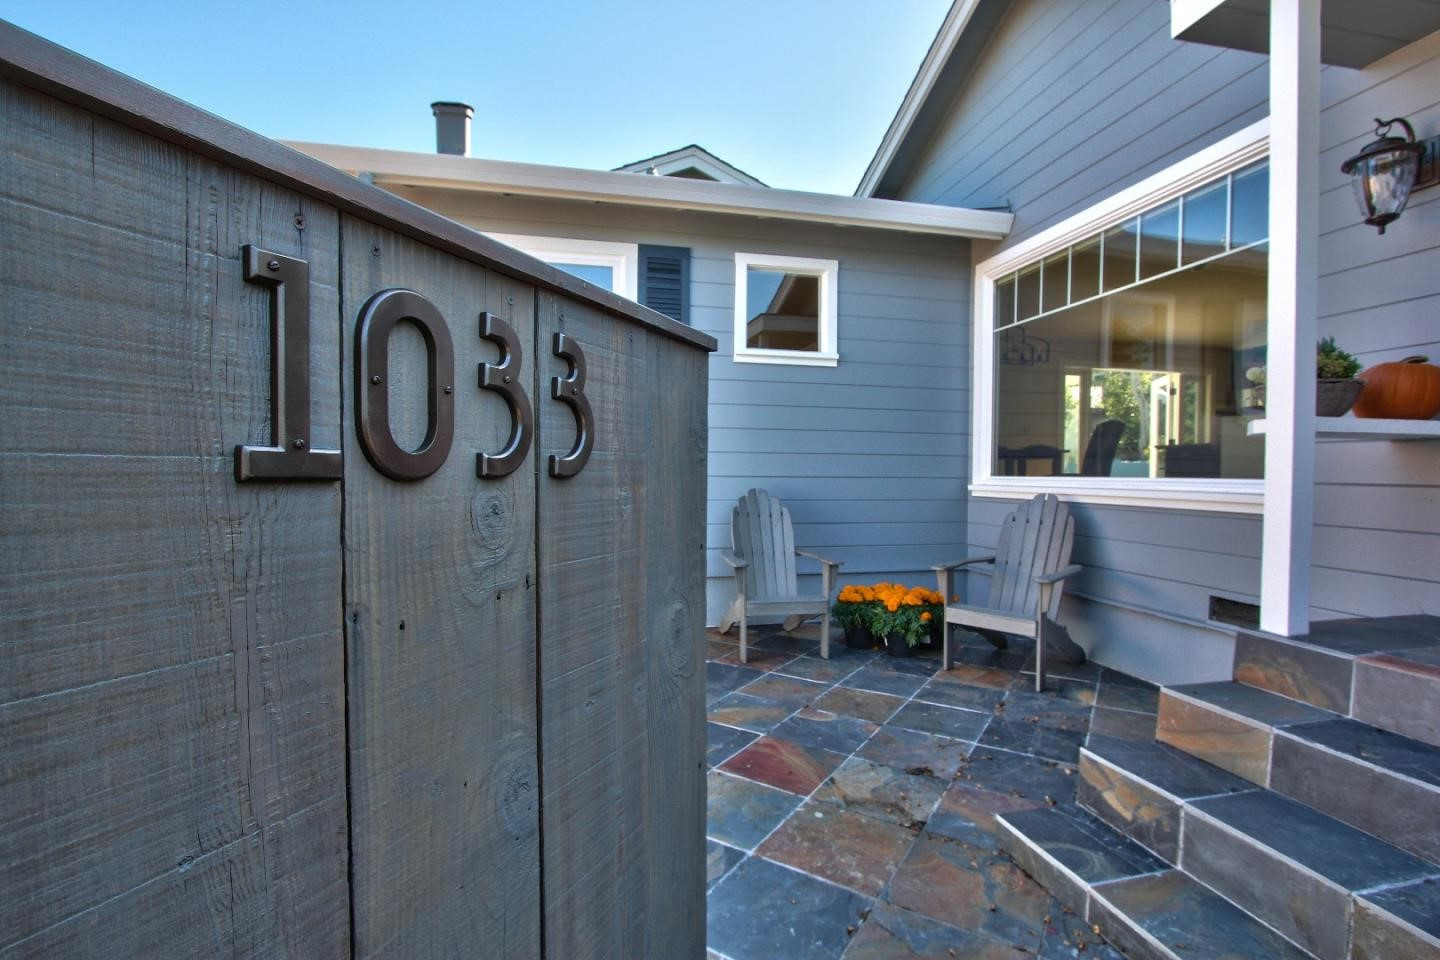 1033 Forest Ave, Pacific Grove, CA 93950 - MLS 81630416 - Coldwell ...